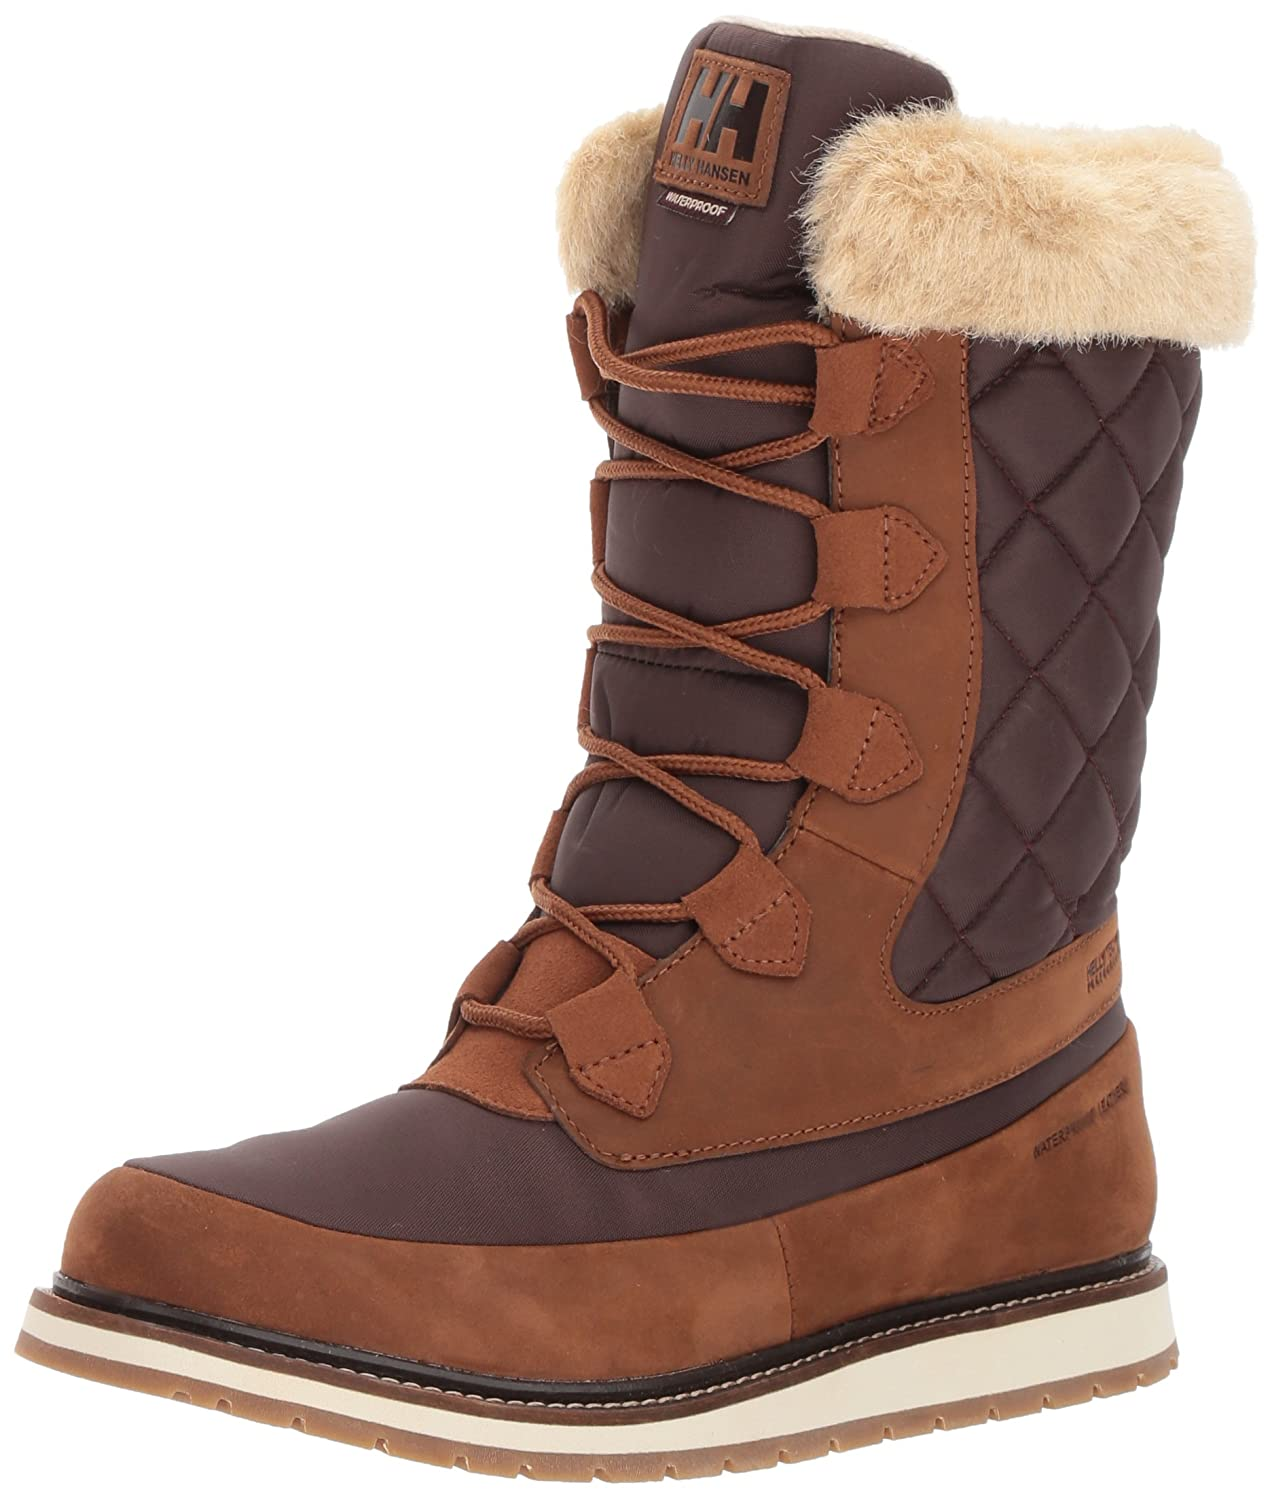 Helly Hansen Women's Arosa HT Winter Boot B06W51TY5V 8.5 B(M) US|Whiskey/Coffe Bean/Inc